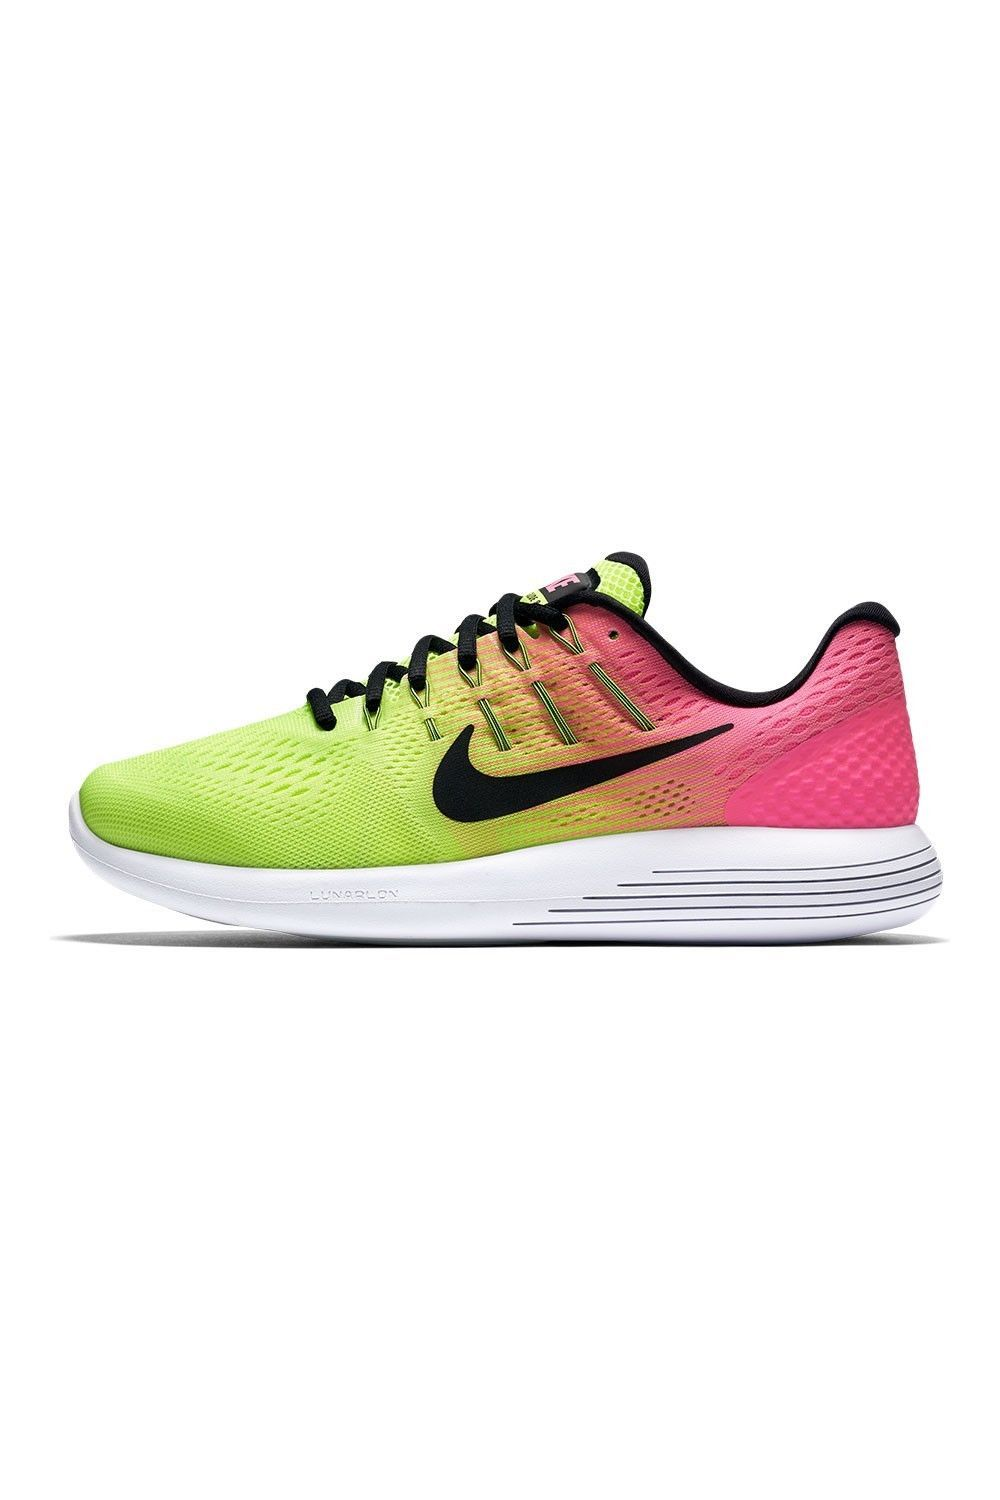 Primary image for Men's Nike Lunarglide 8 OC size 8.5-11 Training Running Shoes 844632 999